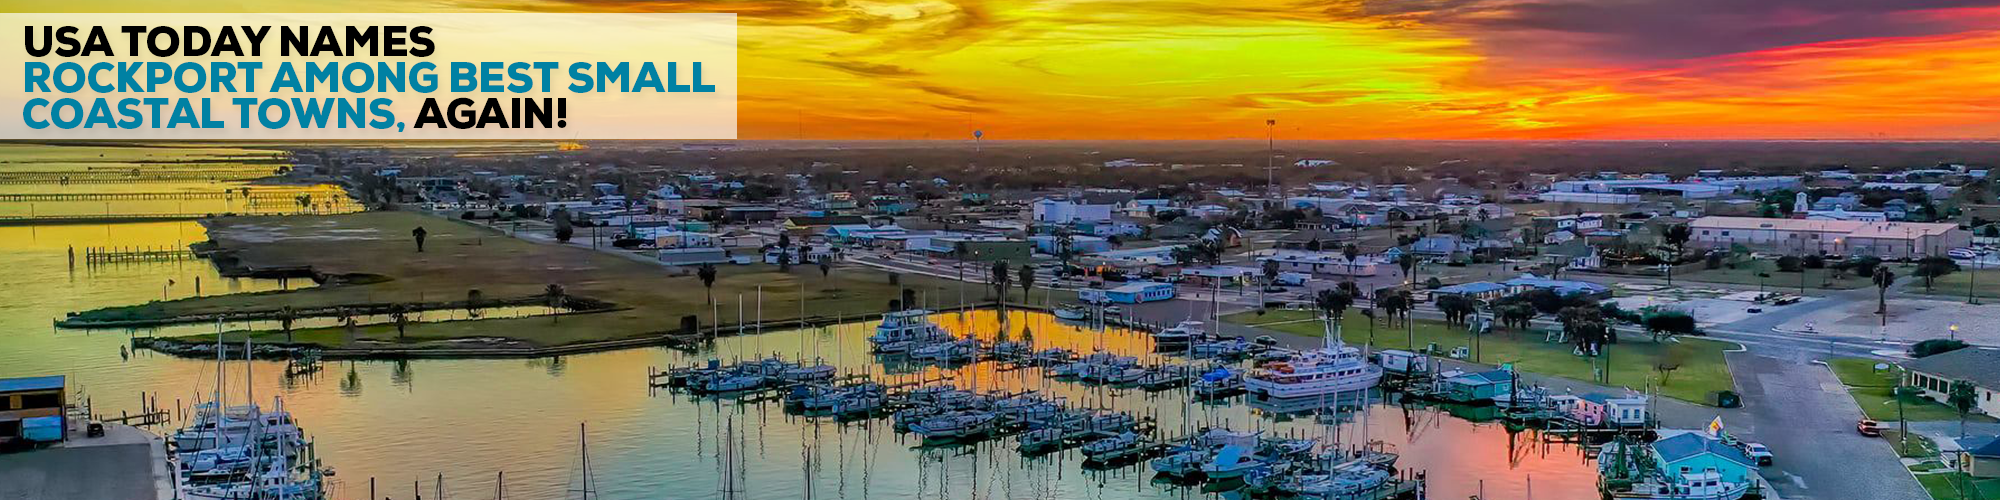 USA TODAY NAMES ROCKPORT AMONG BEST SMALL COASTAL TOWNS, AGAIN!